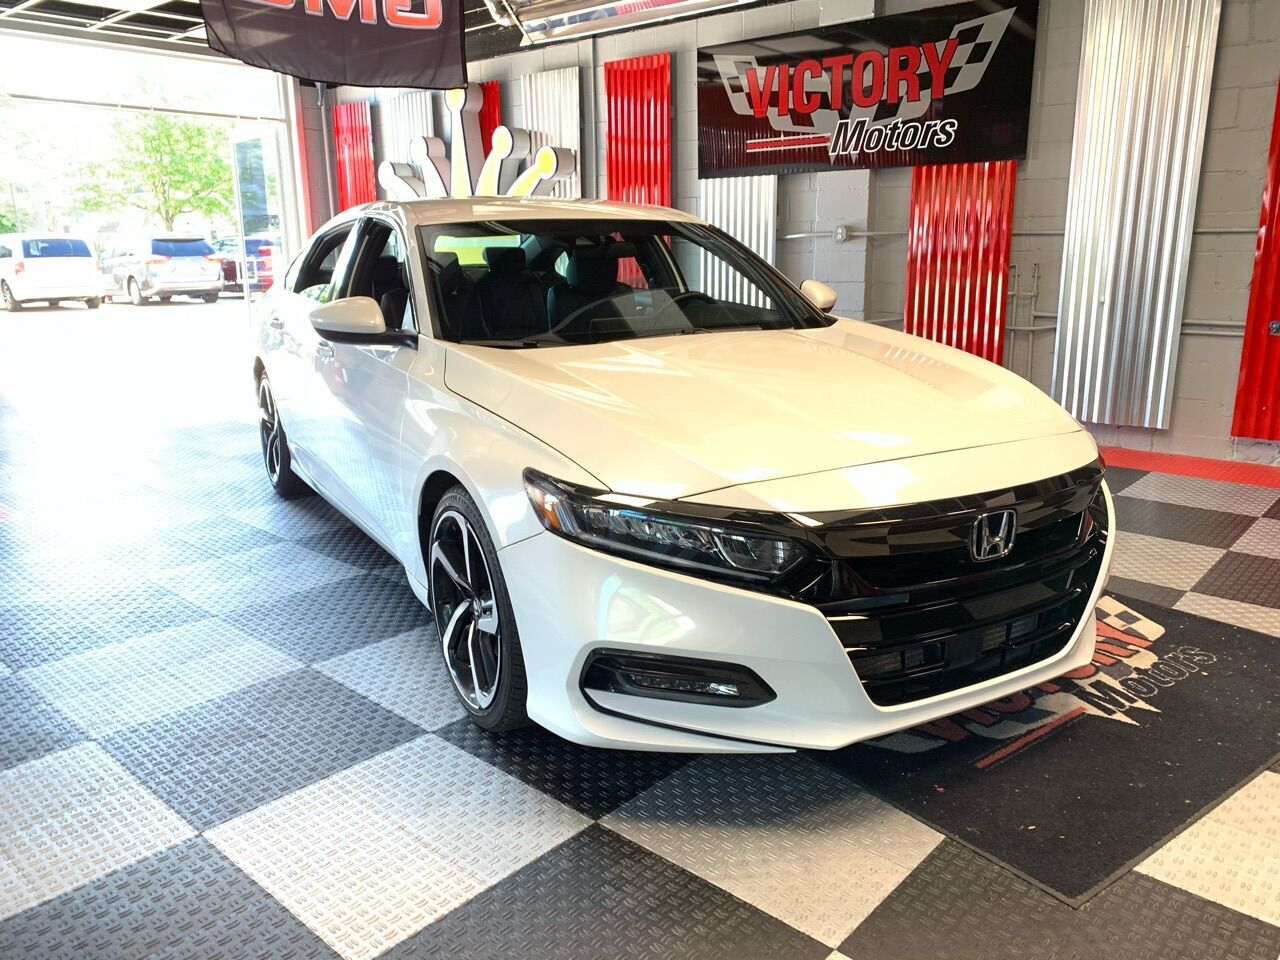 2019 Honda Accord Sport 4dr Sedan (1.5T I4 CVT) Royal Oak MI